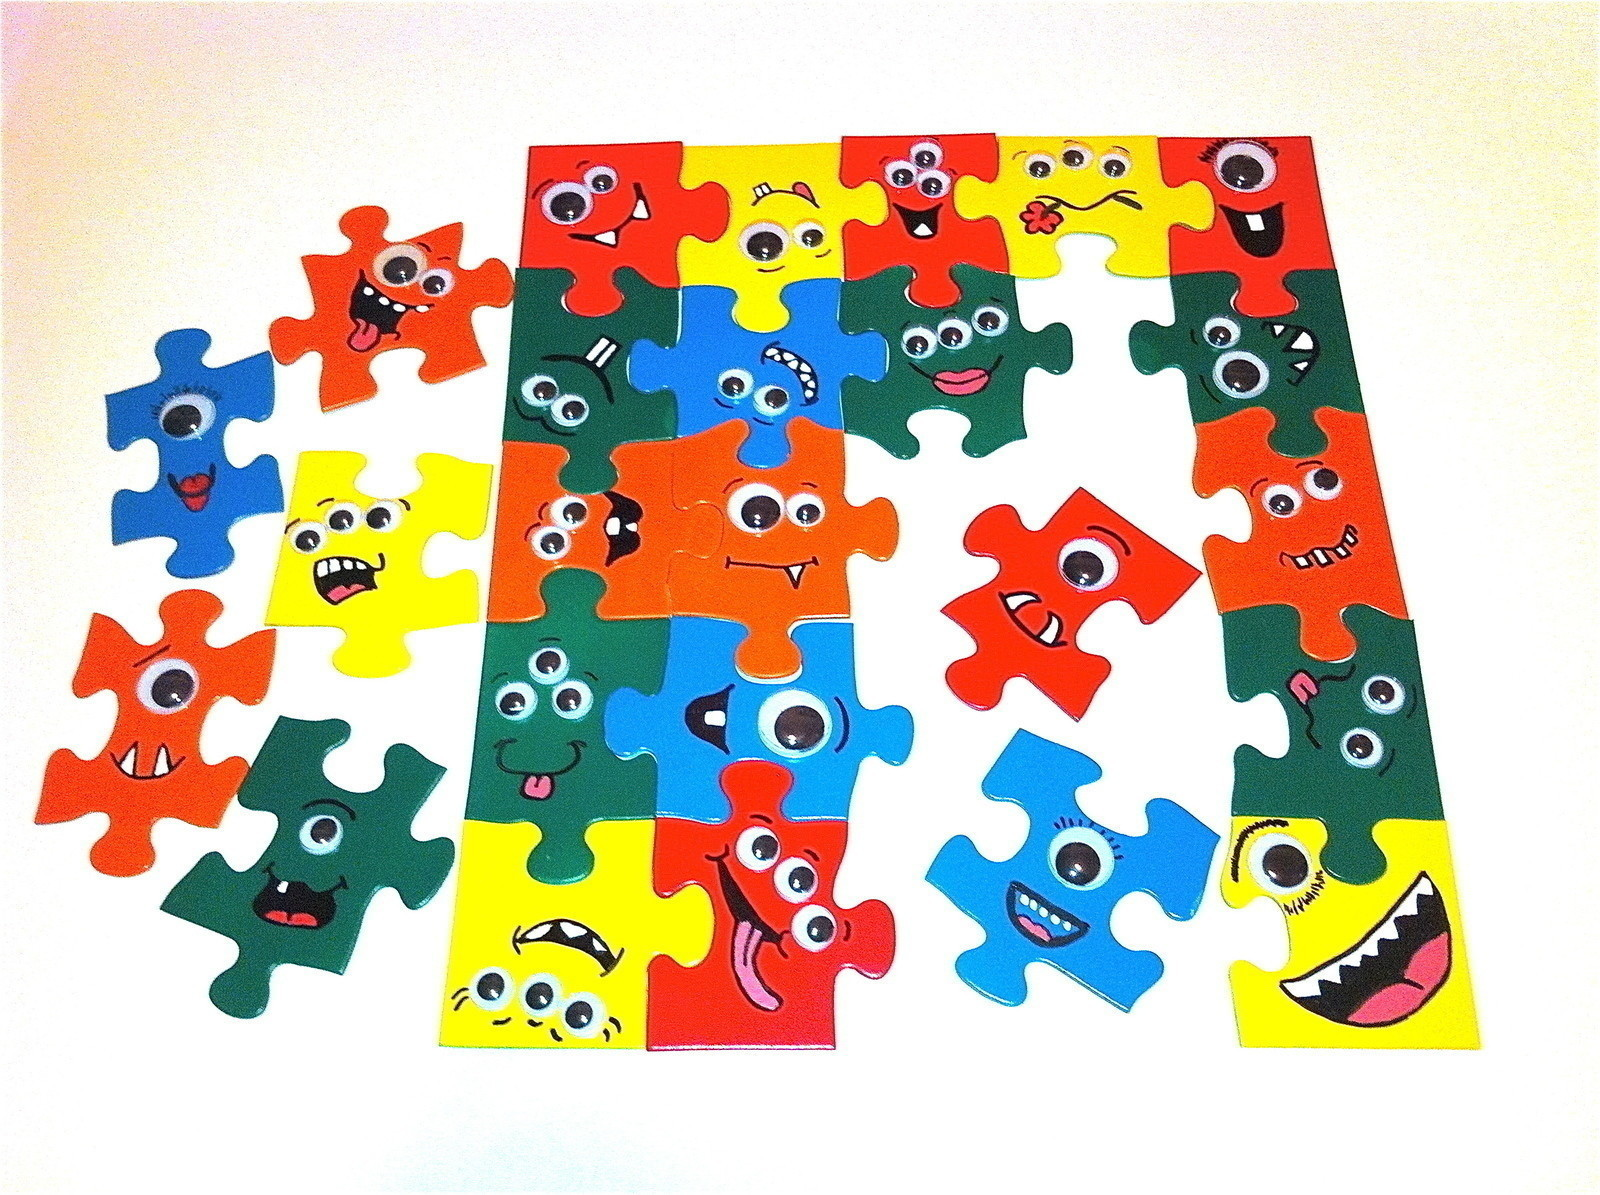 Googly Eyed Monster Puzzle How To Make A Puzzle Art On